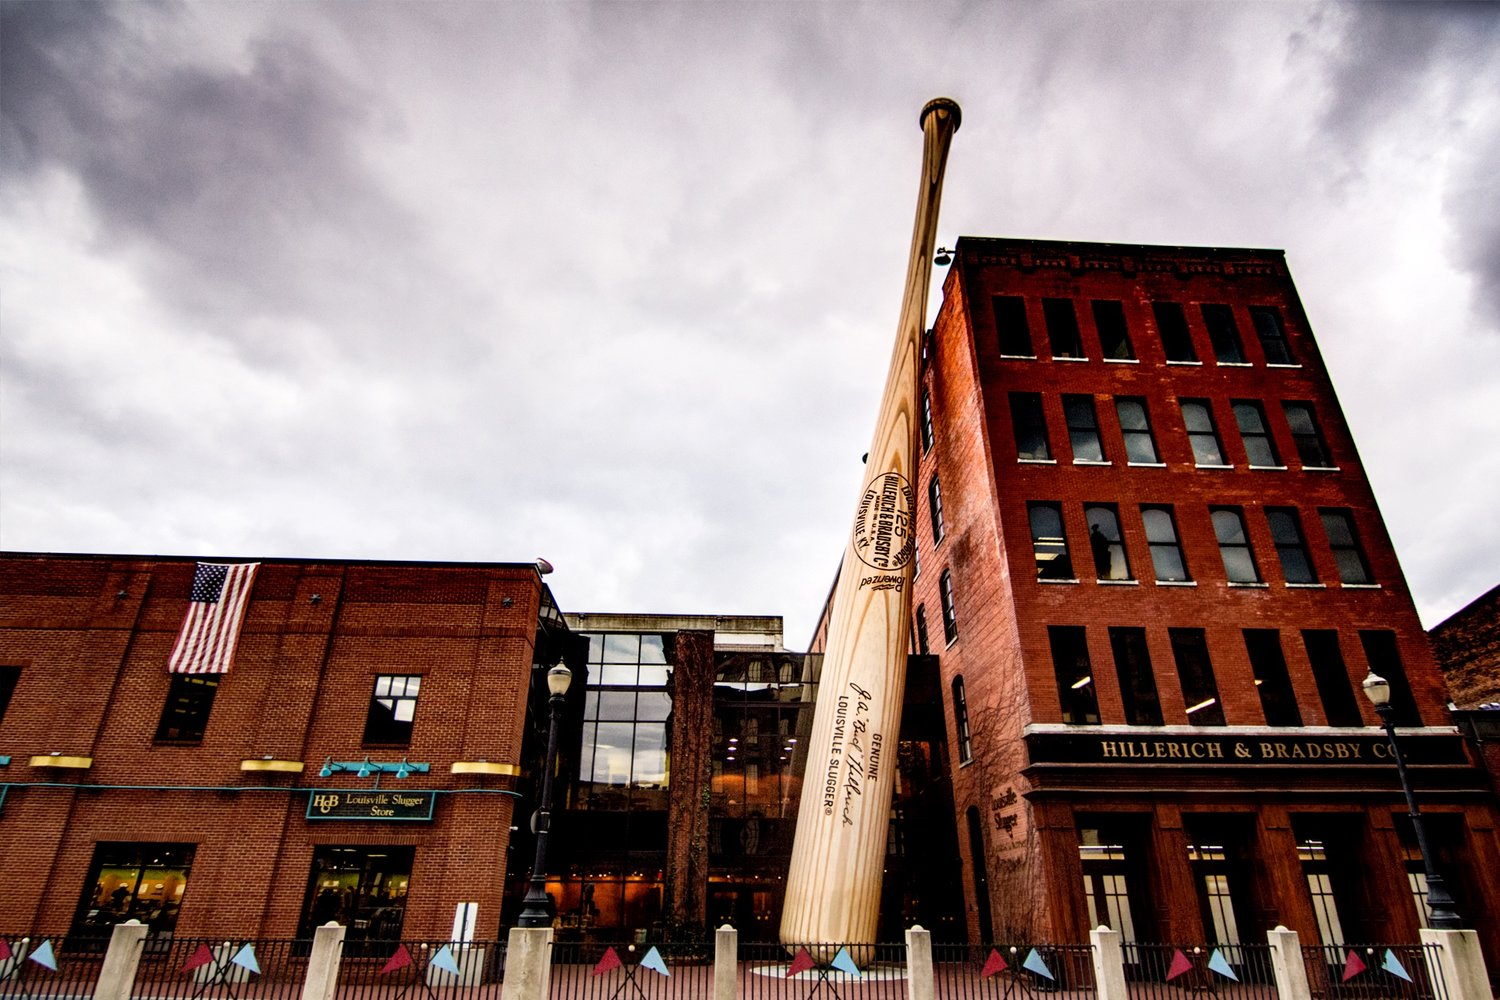 The 'Big Bat' in front of the Louisville Slugger Museum & Factory. Used by most Hall of Famers, the Louisville Slugger baseball bat has been produced by the same family-owned business since the 1880s.